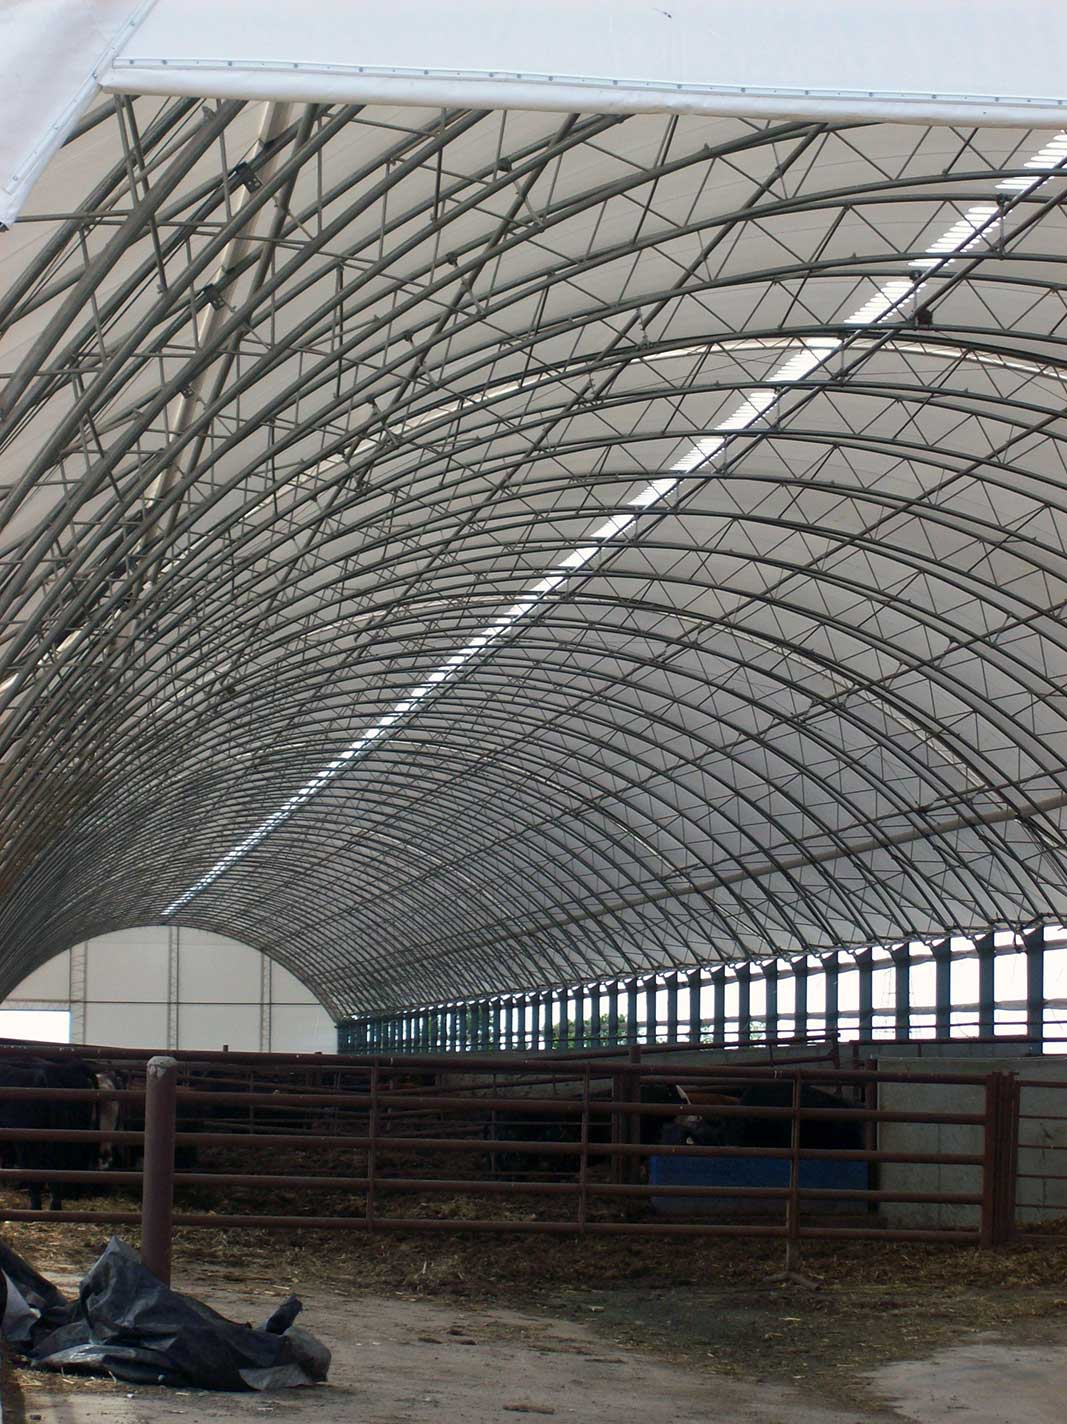 70' Wide Hoop Barn